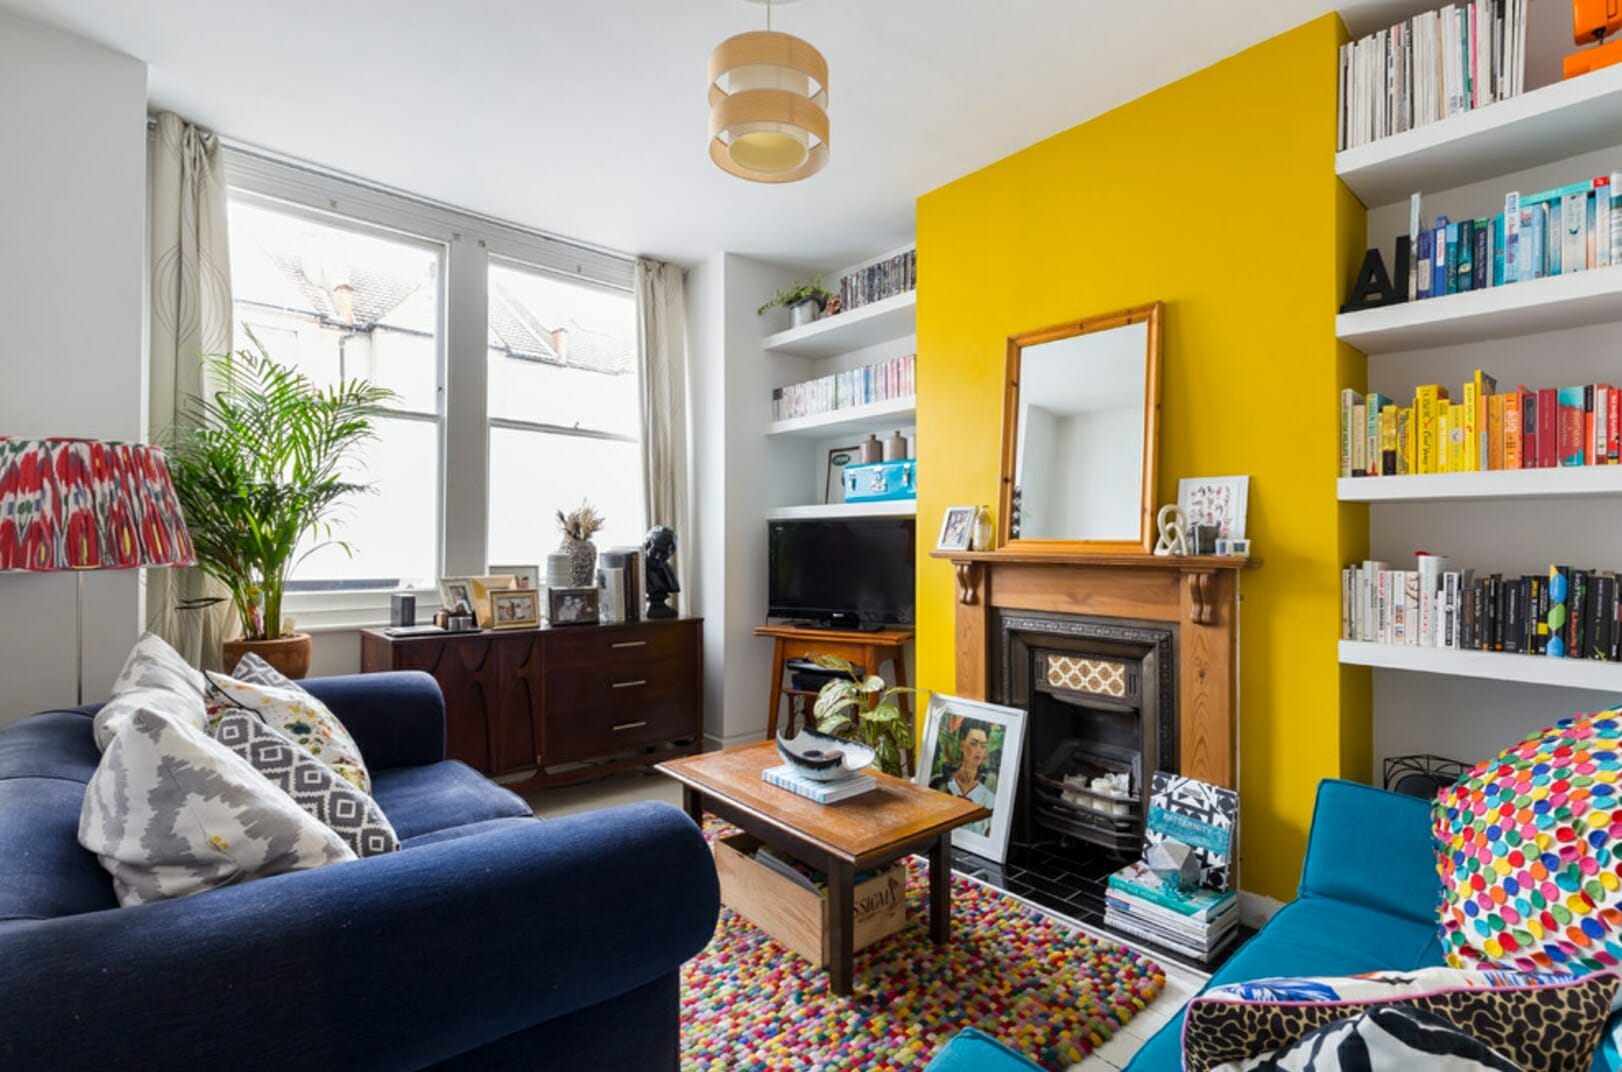 Magnificent yellow accent wall over the fireplace